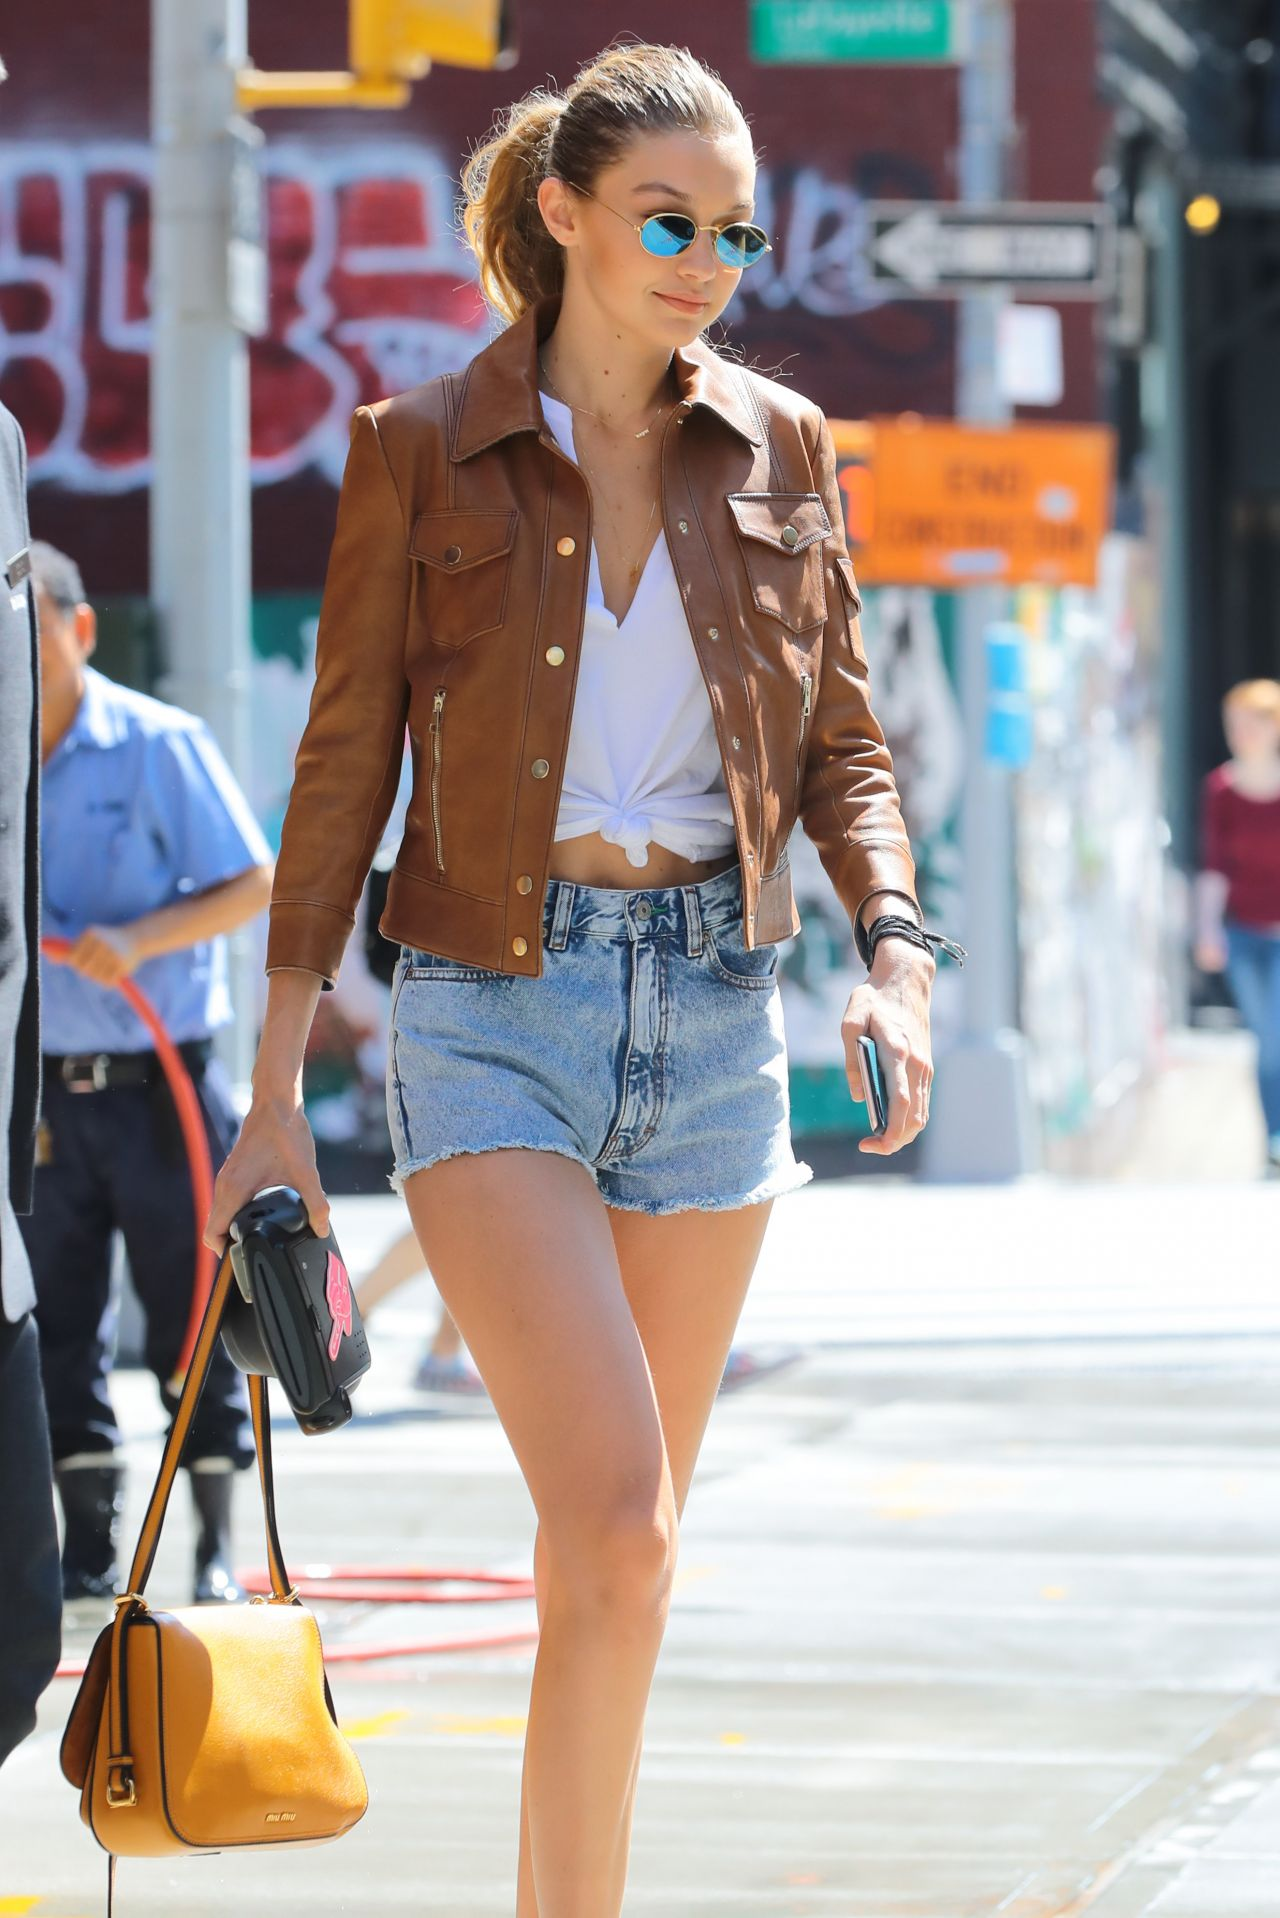 Gigi Hadid In Jeans Shorts Nyc 9 4 2016